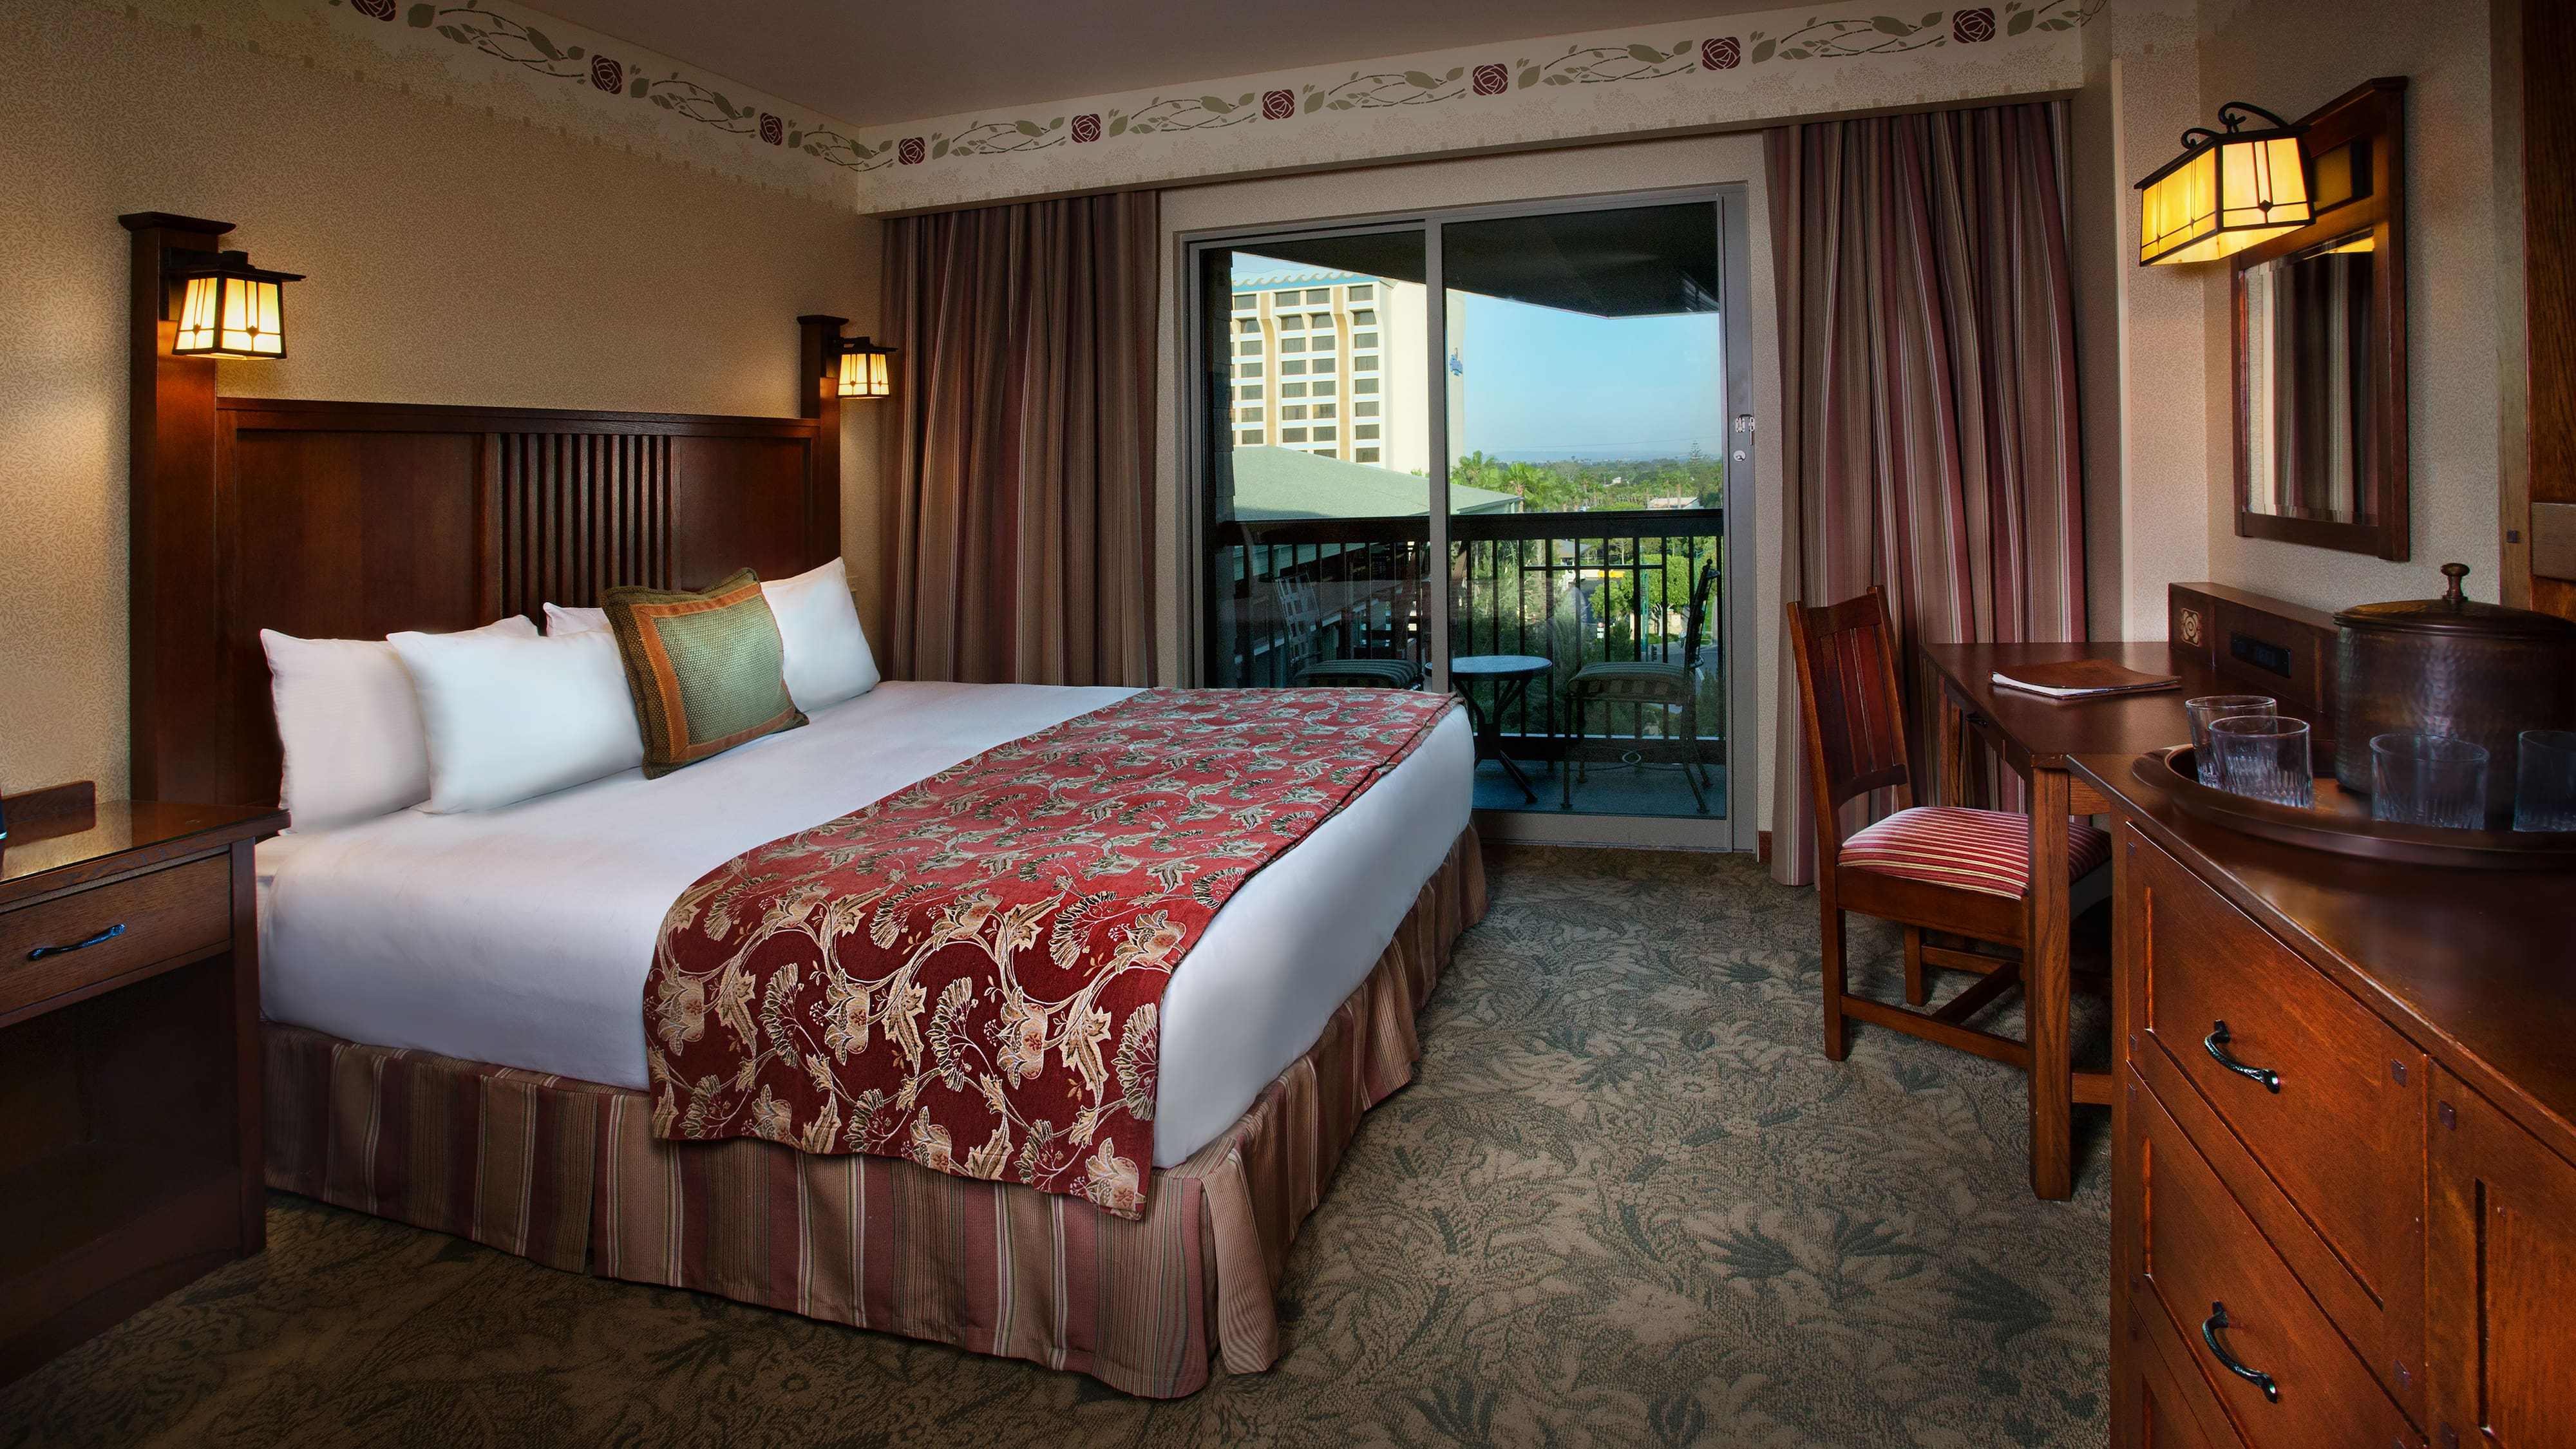 Rooms Amp Points The Villas At Disney S Grand Californian